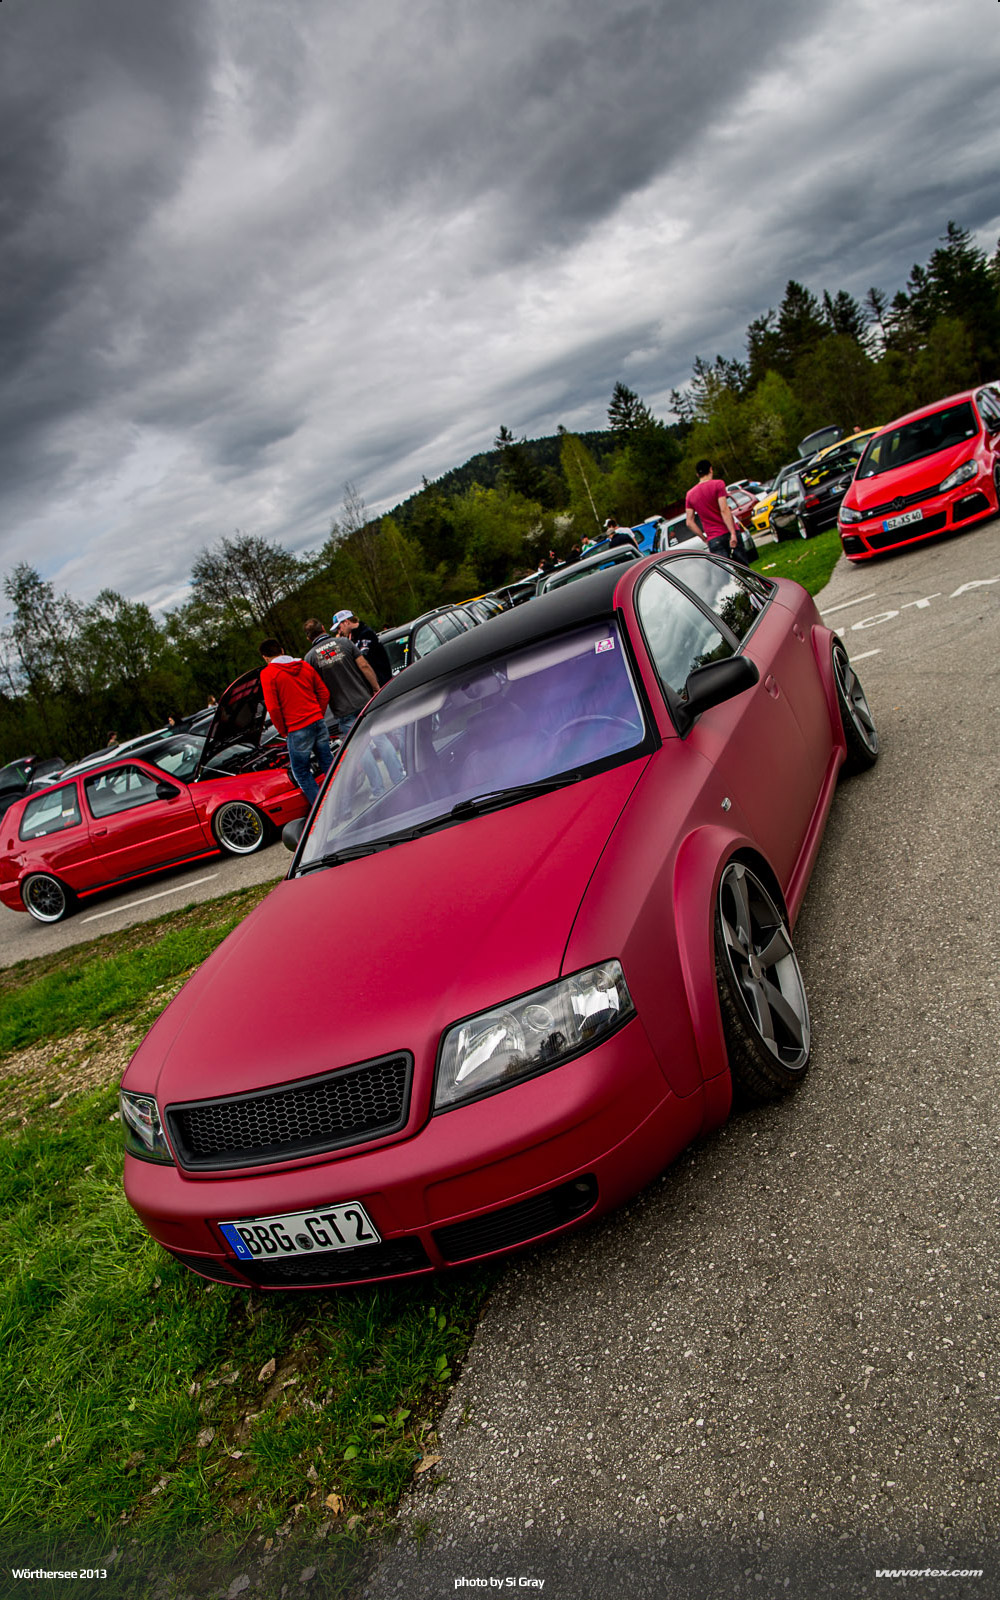 worthersee-2013-gallery-si-gray-035